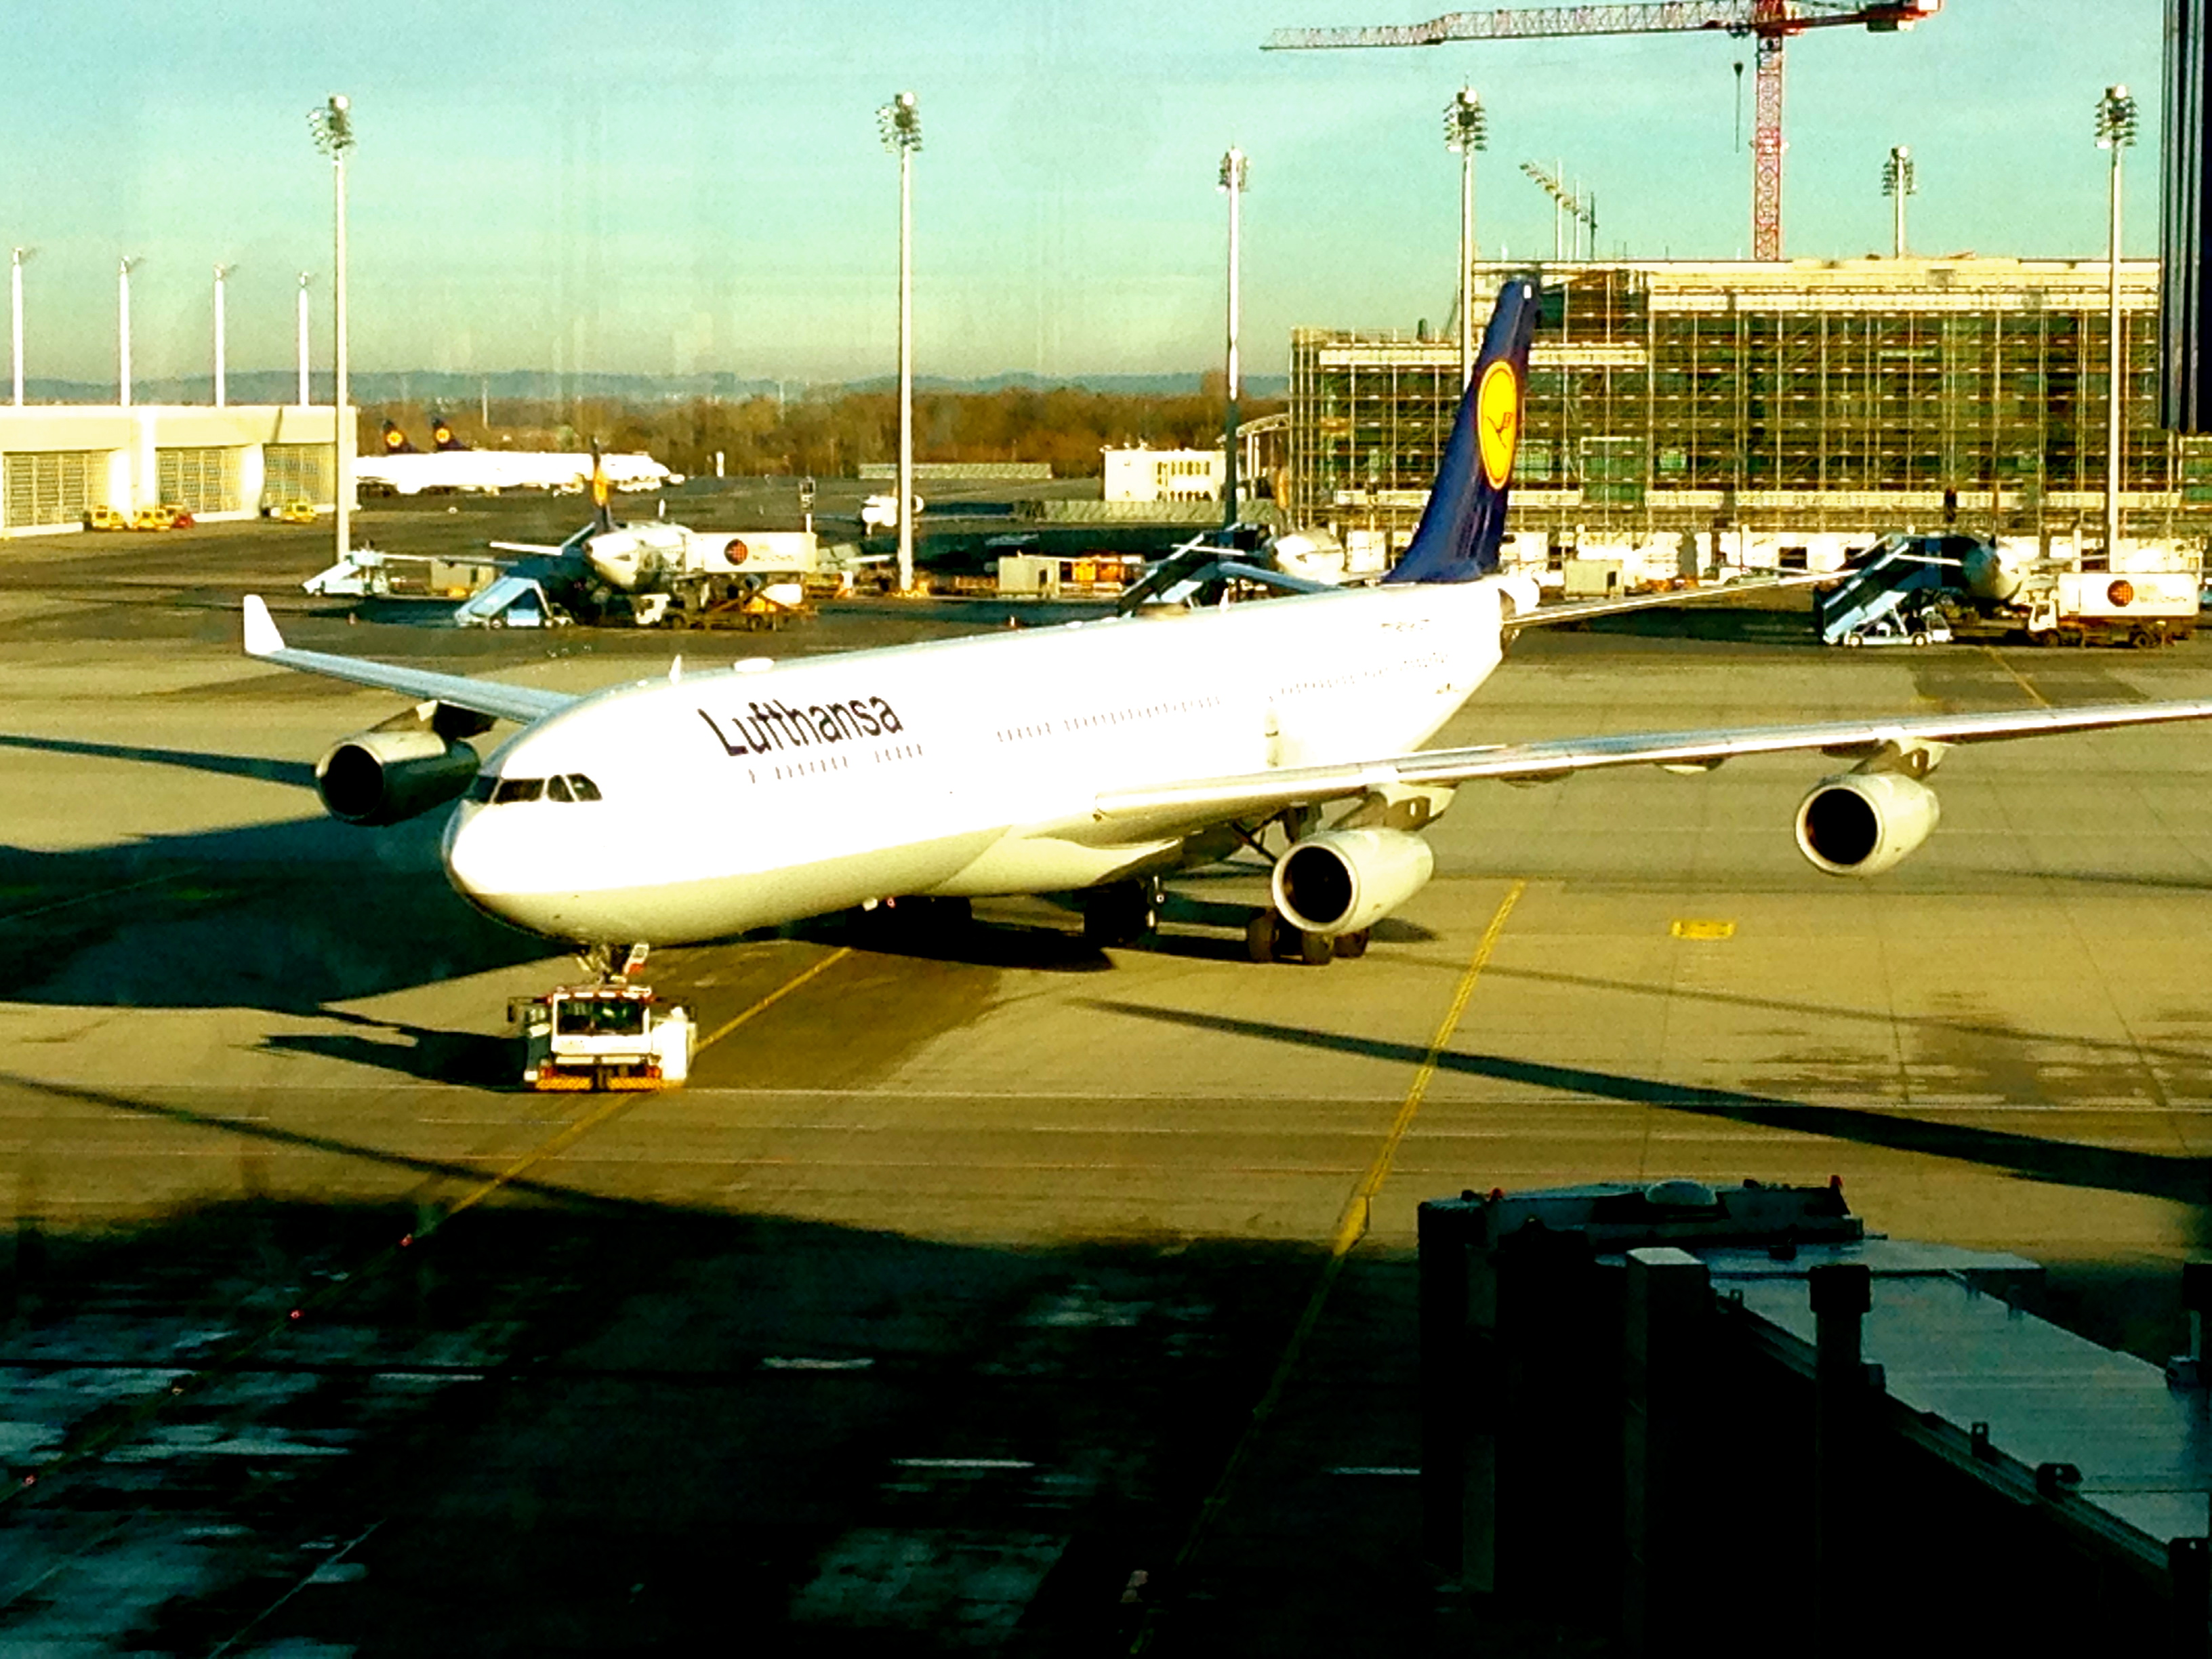 Lufthansa A340-300 Munich AIrport bound for Chicago